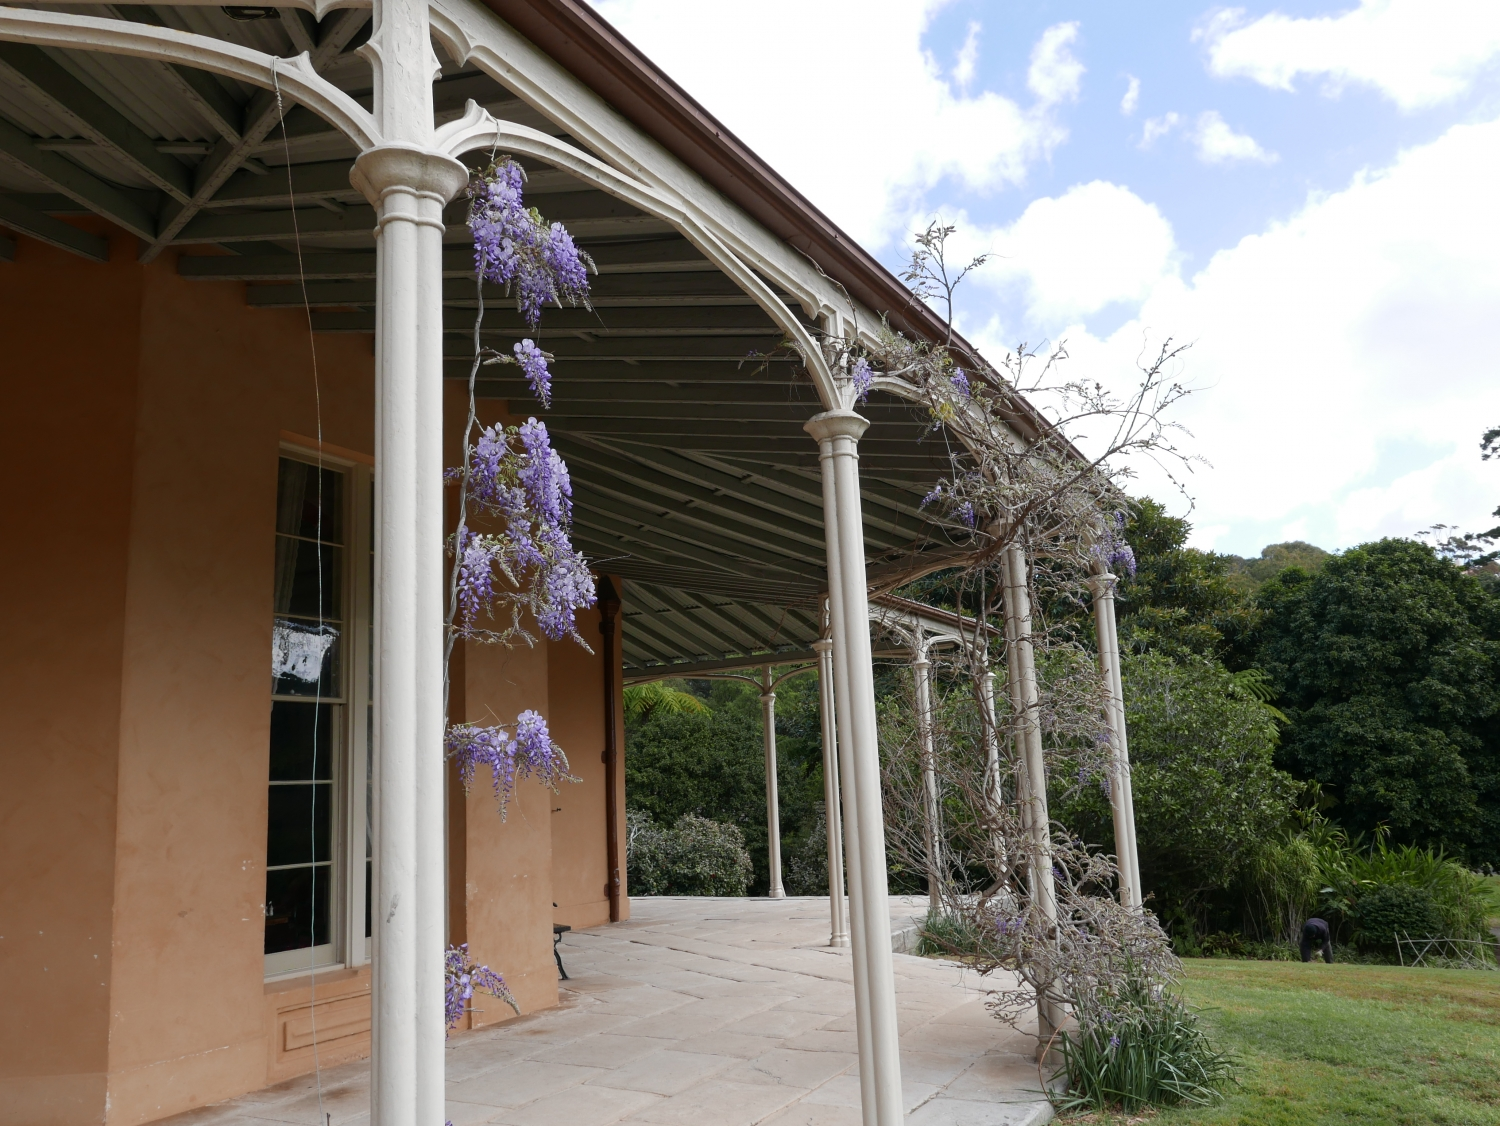 The verandah at Vaucluse House with the first Wisteria blooms